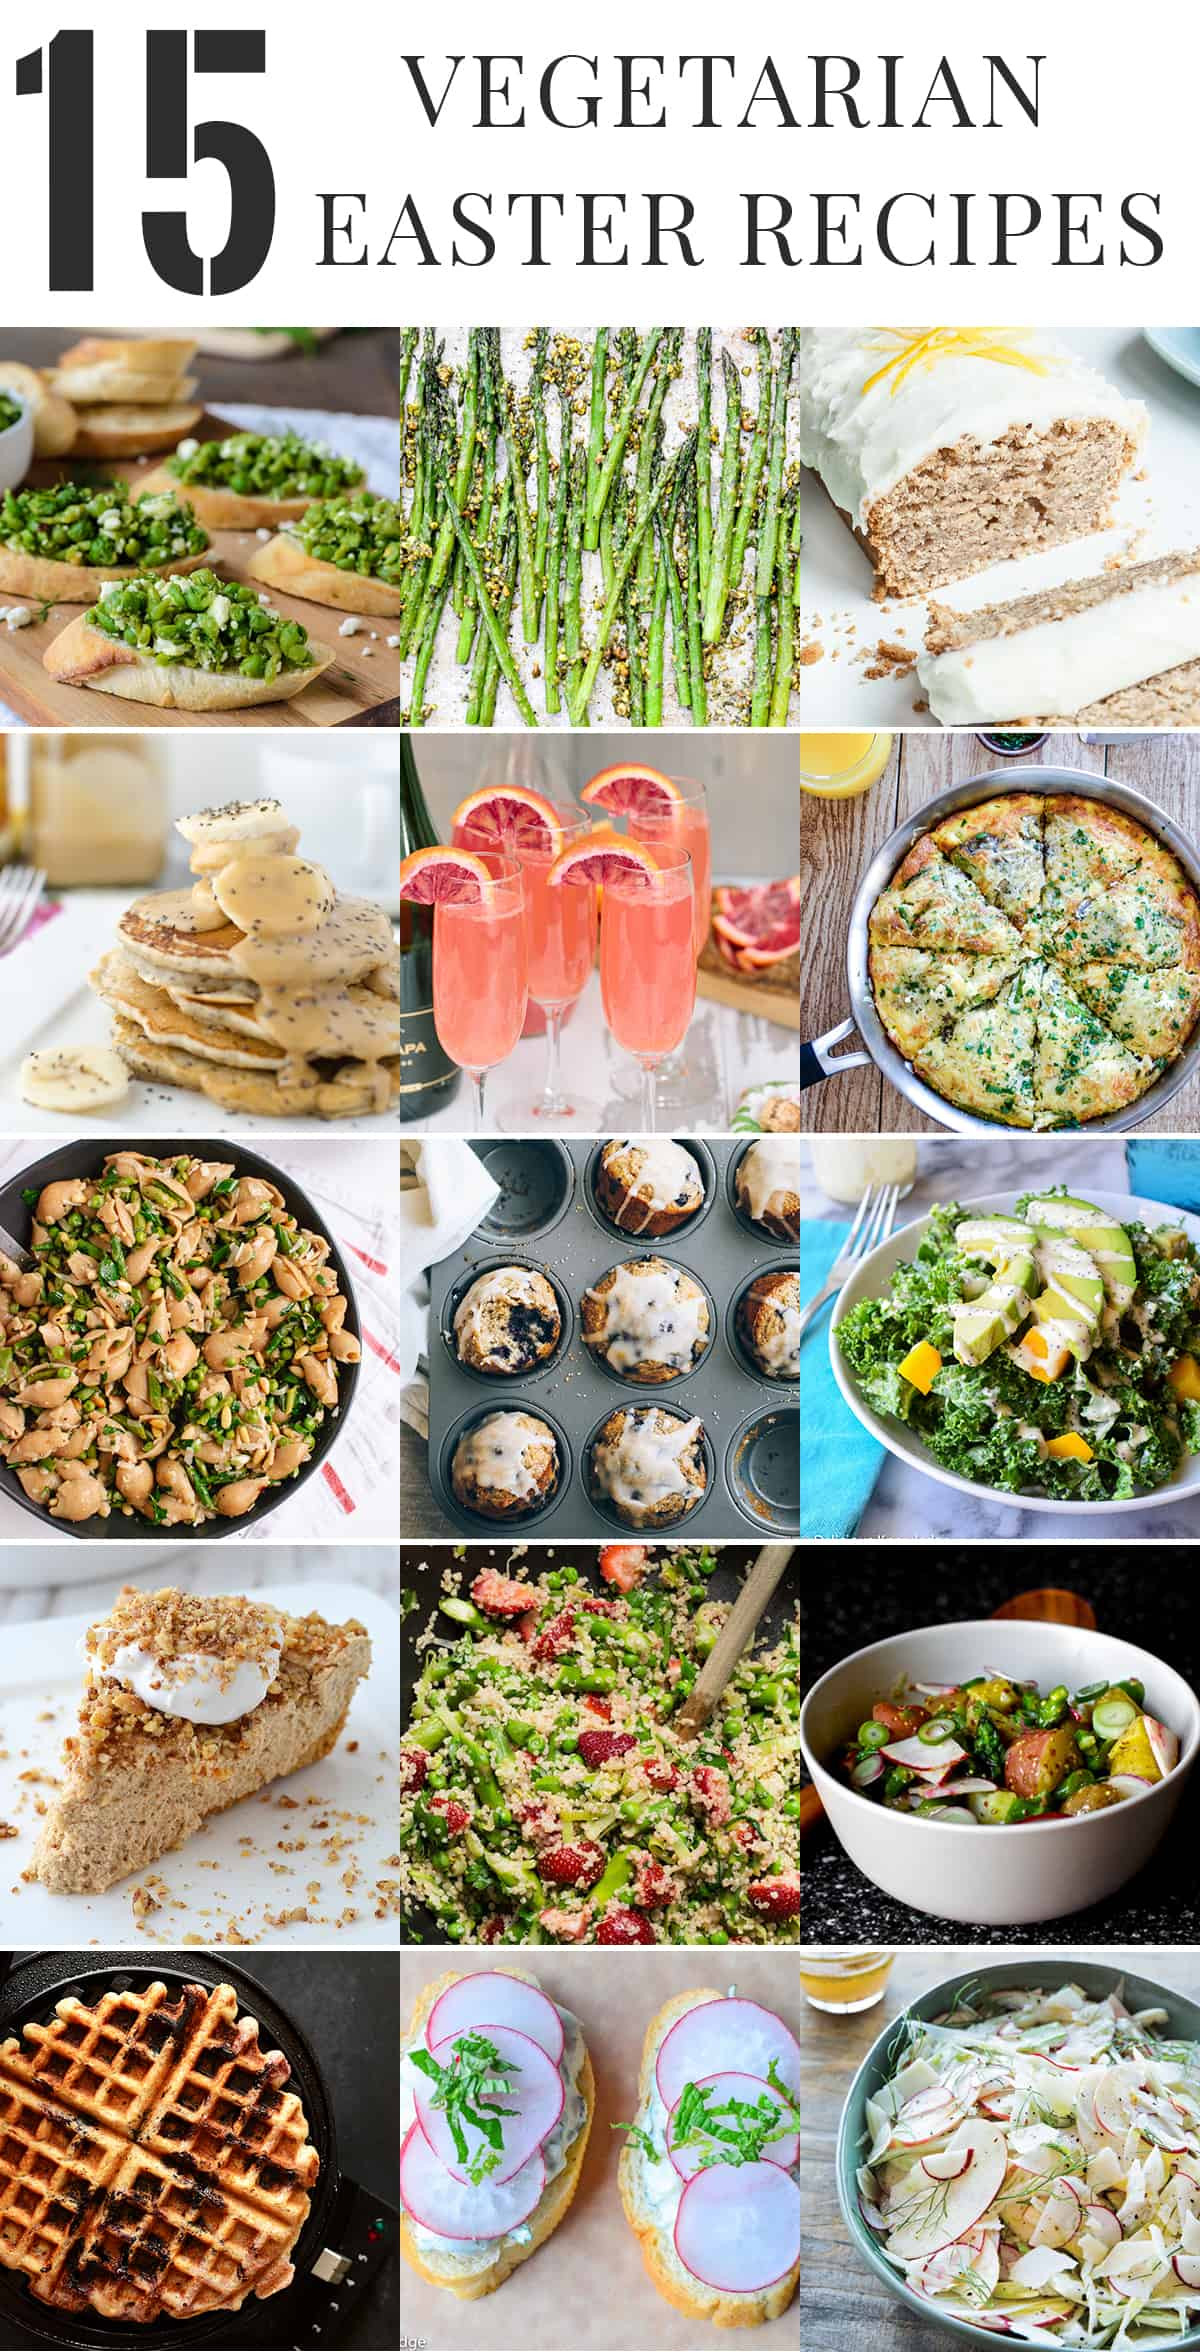 Vegan Easter Dinner Recipe  Healthy Ve arian Easter Recipes Delish Knowledge